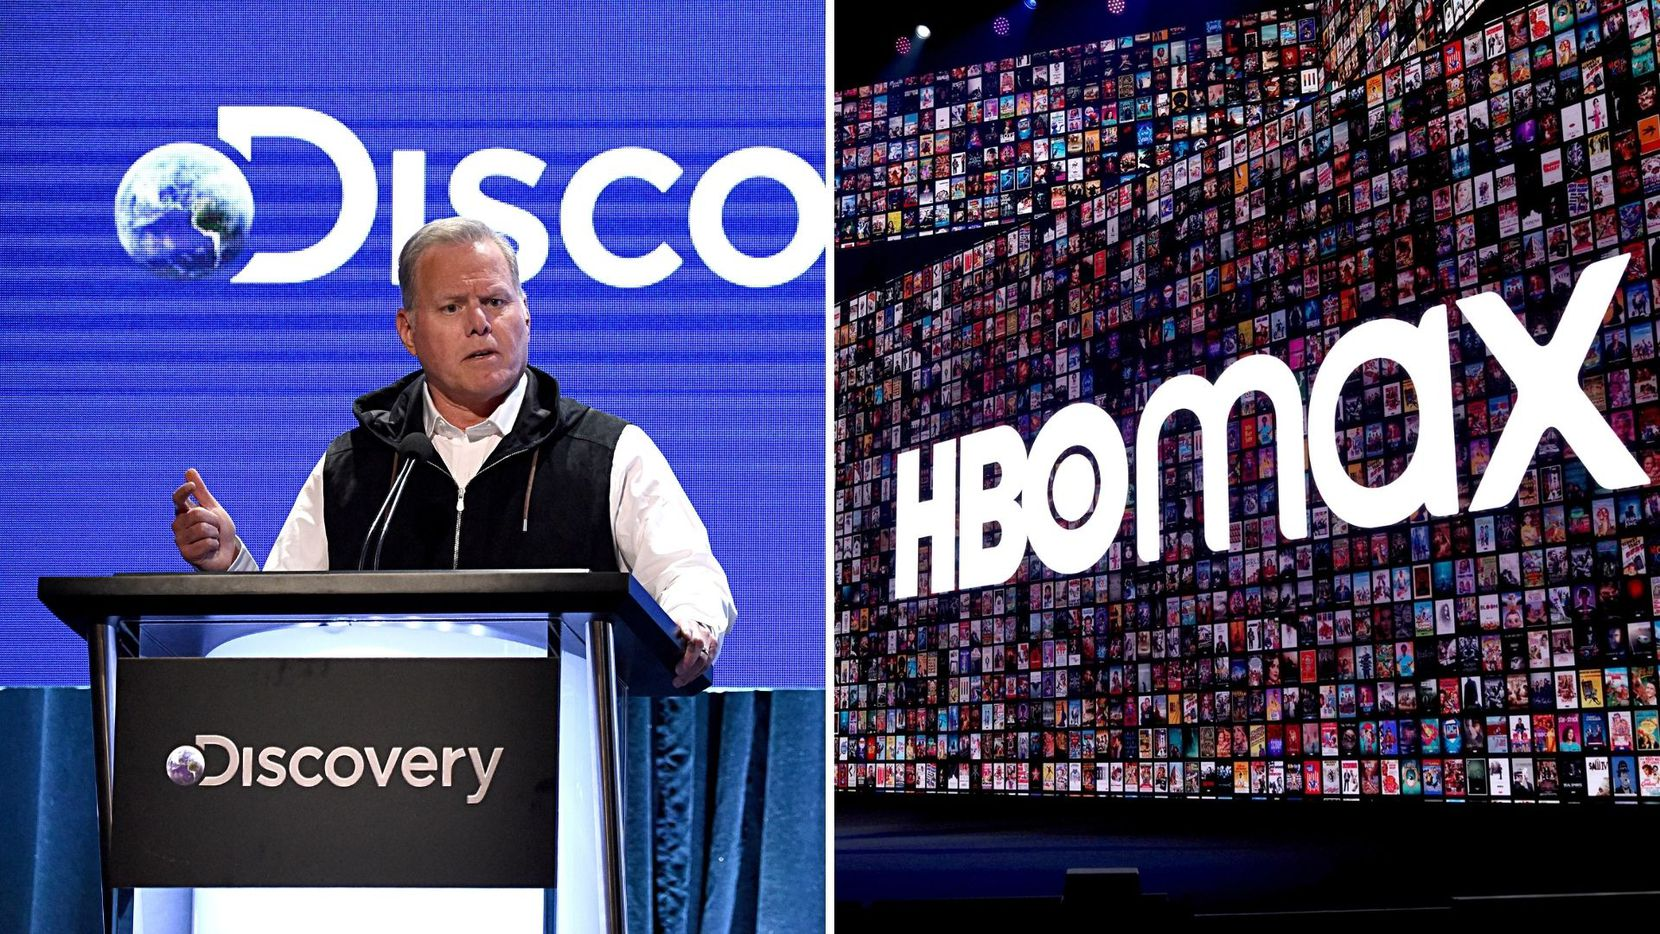 The deal between AT&T and Discovery unites a storied film studio, and home of HBO, TNT and CNN, with Discovery's lineup of cable TV channels like HGTV and the Food Network.